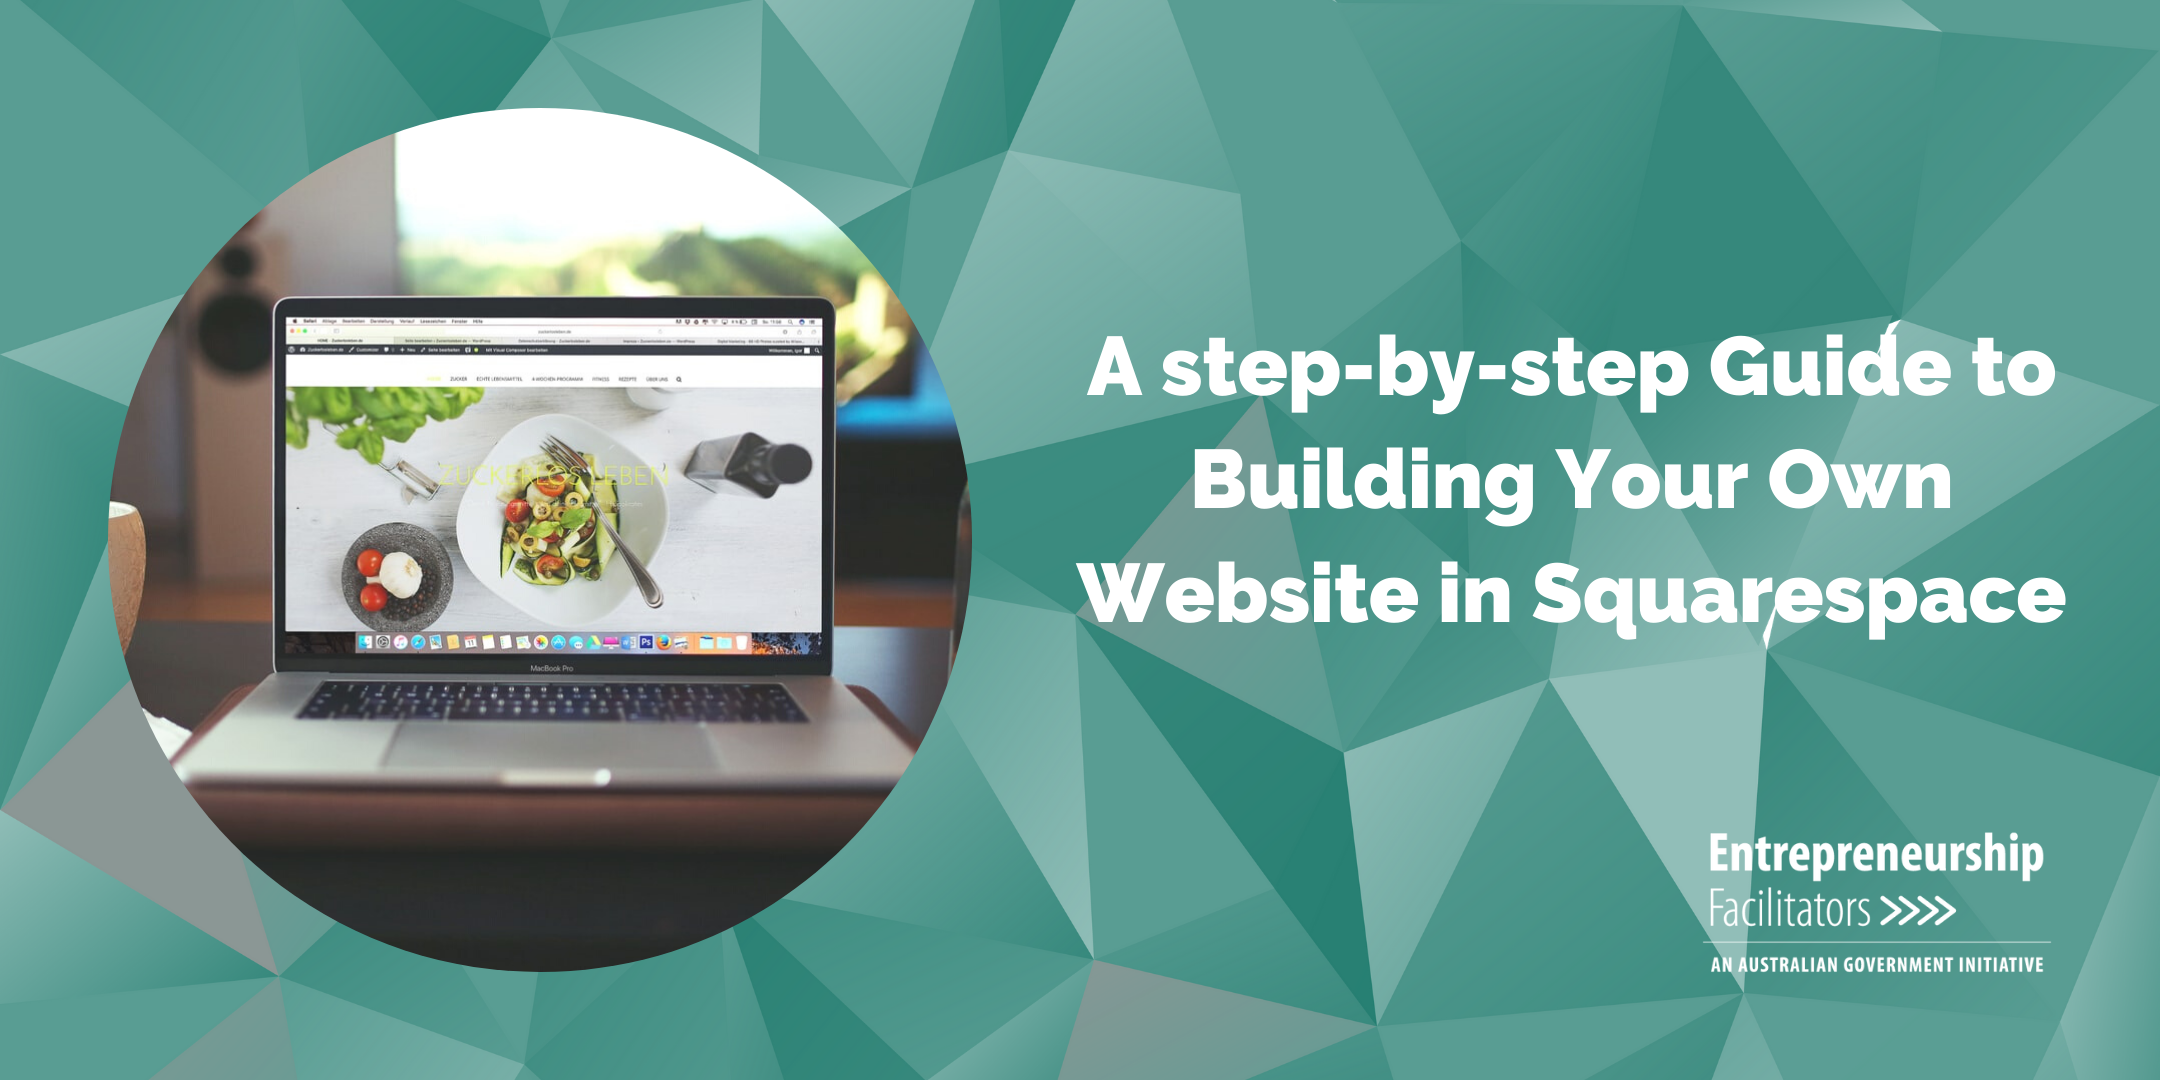 A step-by-step Guide to Building Your Own Website in Squarespace